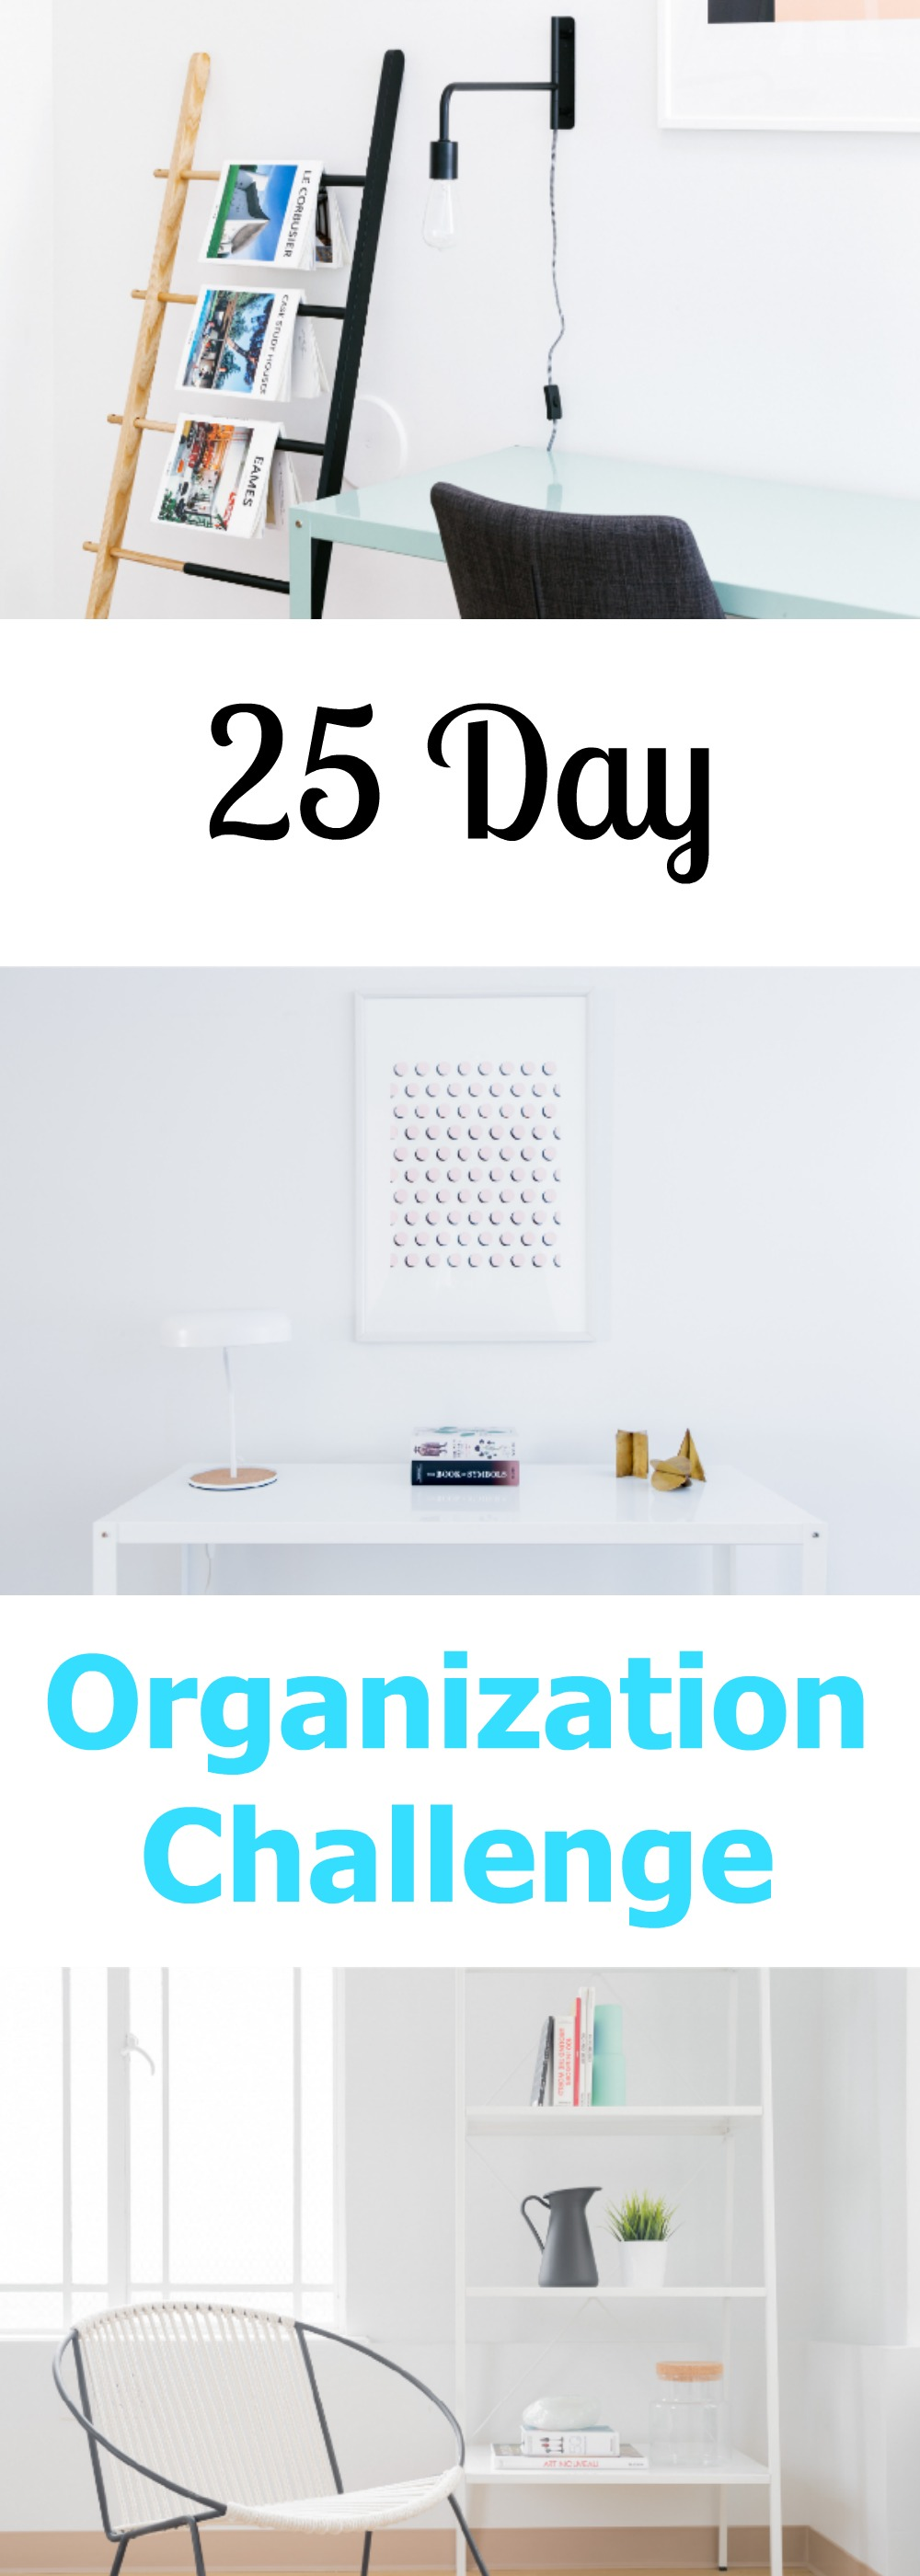 25 Day Organization Challenge to Clean up Clutter